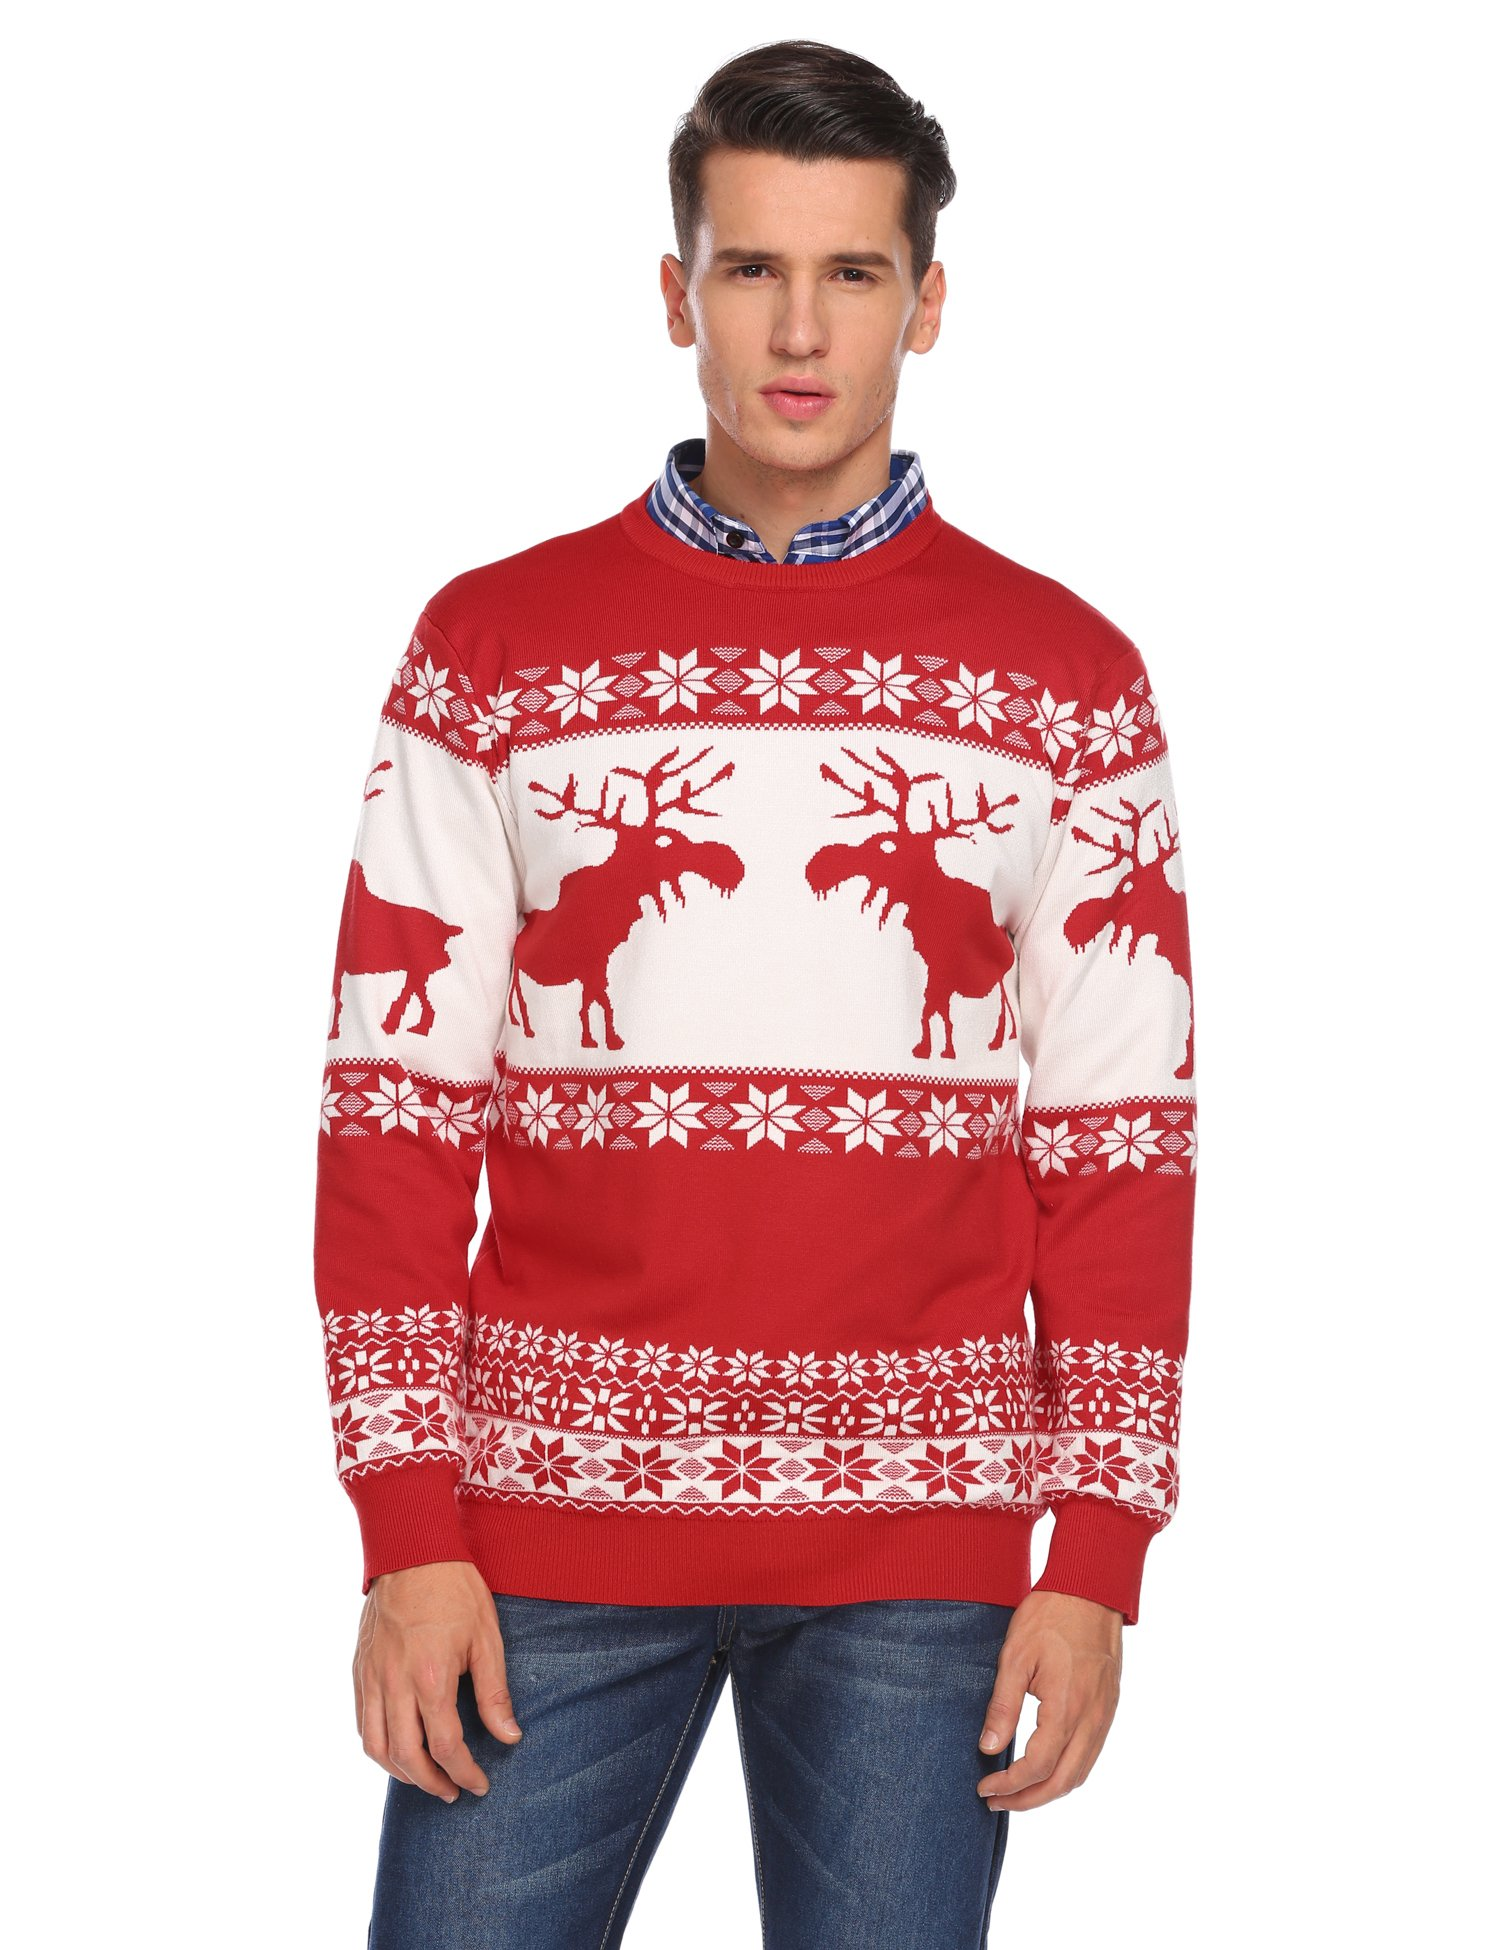 COOFANDY Men's Casual Sweaters Shirt Cable Knitted Crew Neck Pullover